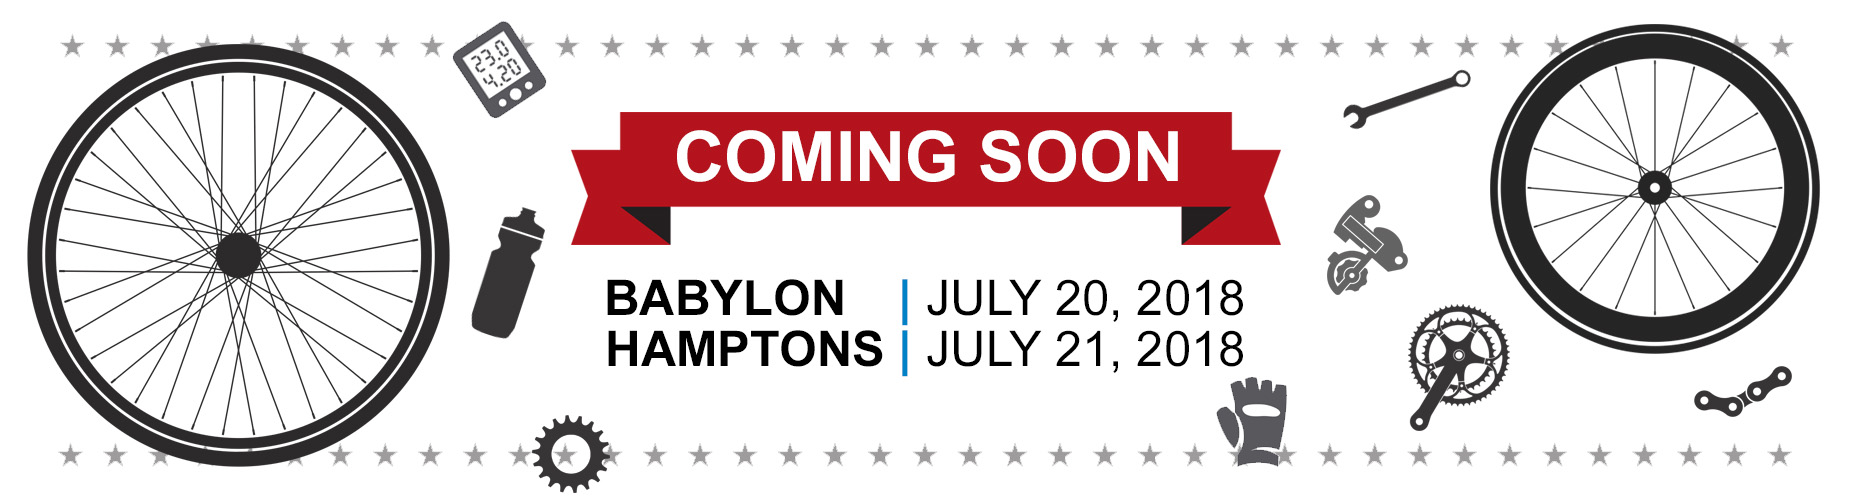 COMING SOON BABYLO, HAMPTONS SOLDIER RIDES